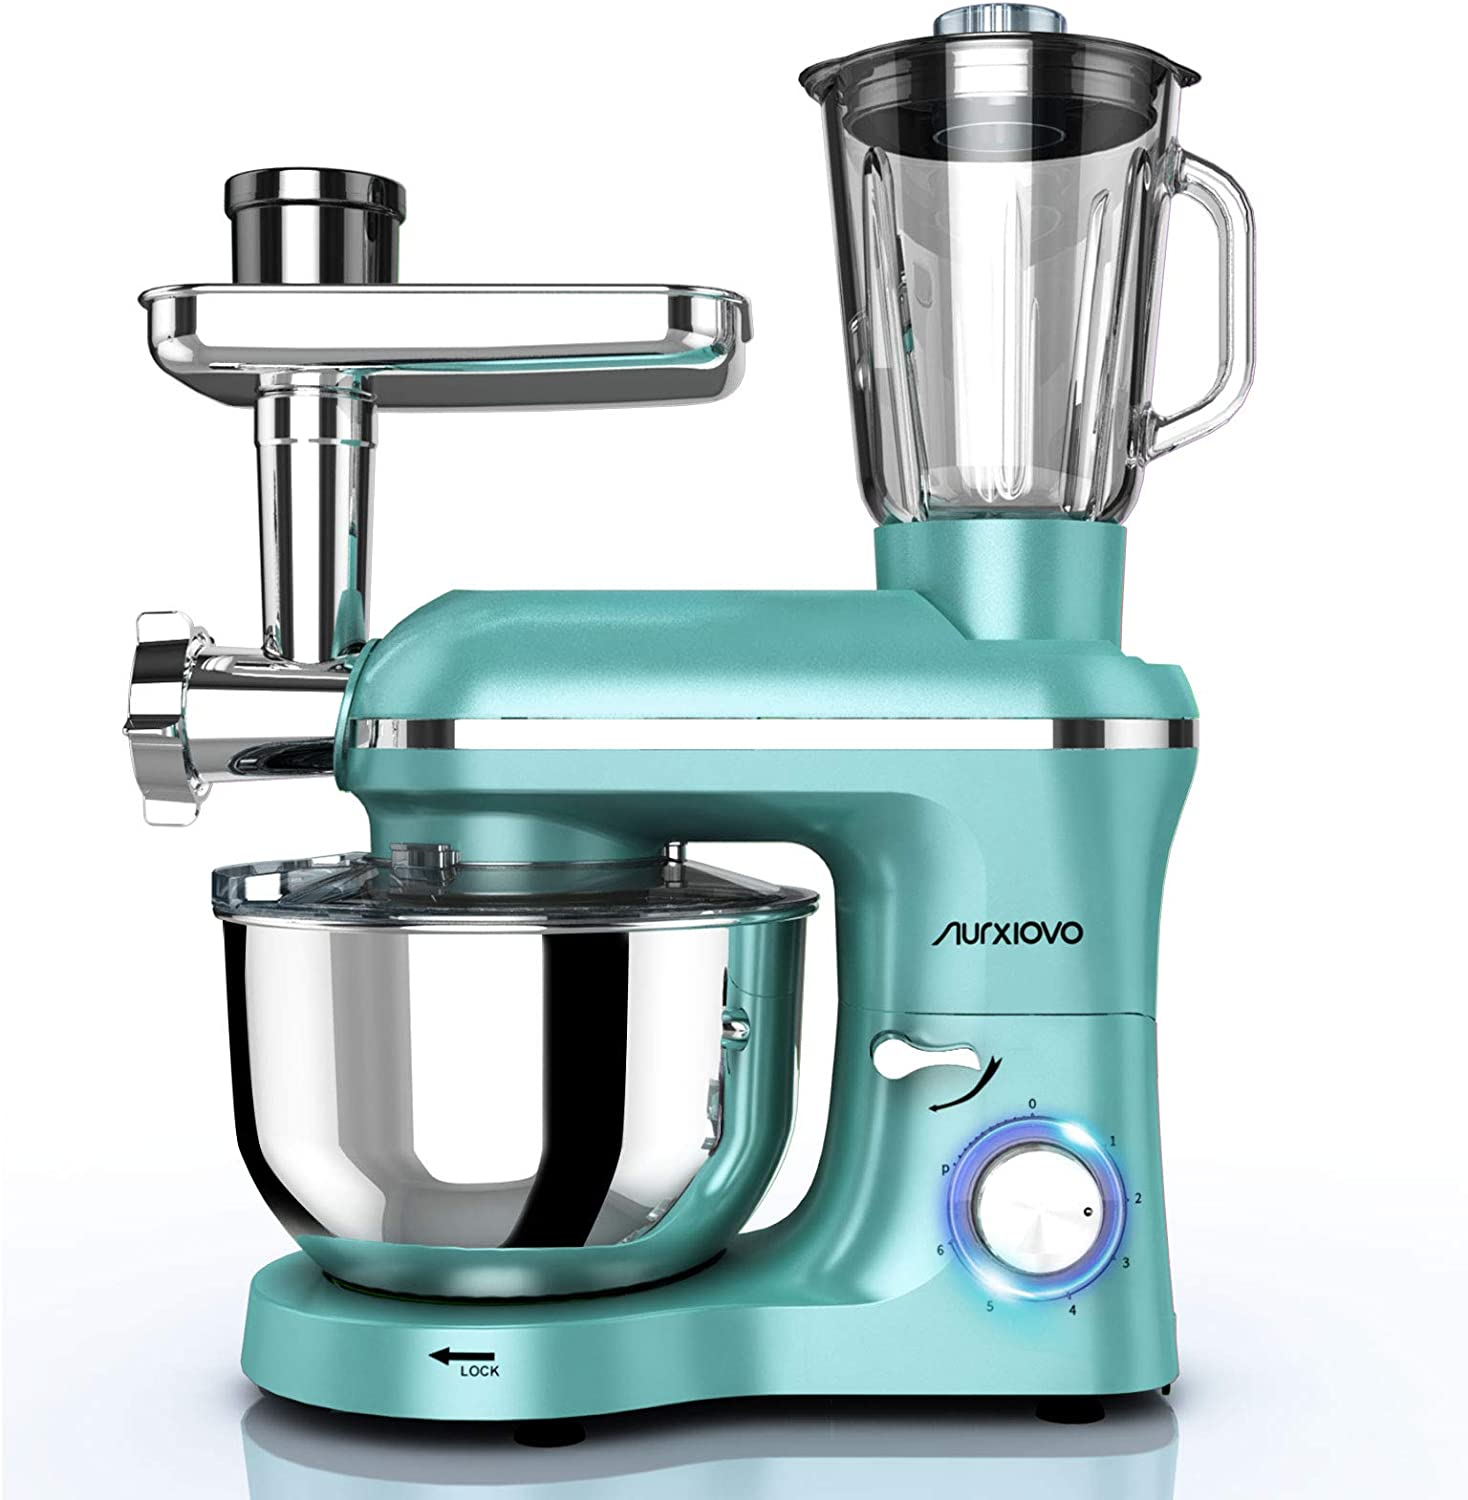 Nurxiovo 3 in 1 Stand Mixer 850W,6 Speed Tilt-Head Kitchen Standing Mixer with 6.5QT Stainless Steel Bowl, Dough Hook Whisk Beater, Meat Blender and Juice Extracter